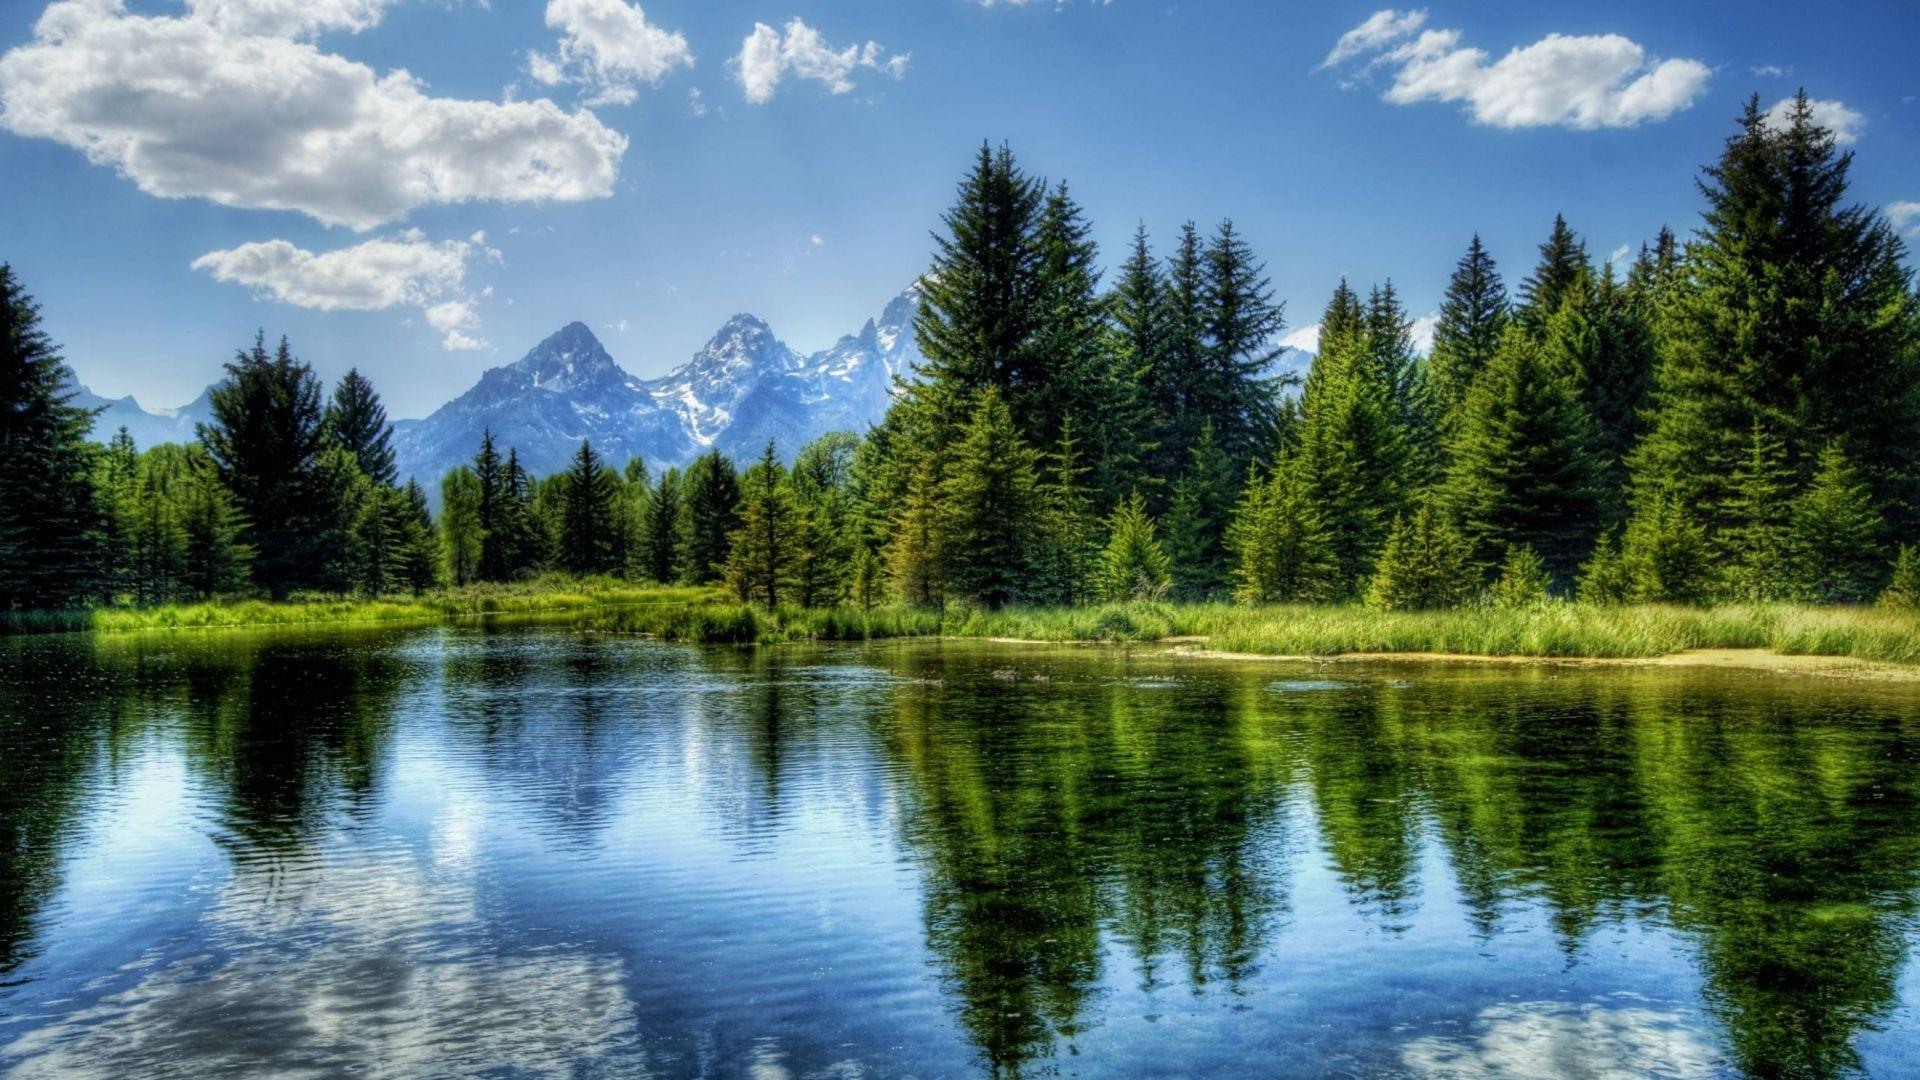 Download Wallpapers 1920x1080 lake, mountain, tree, water